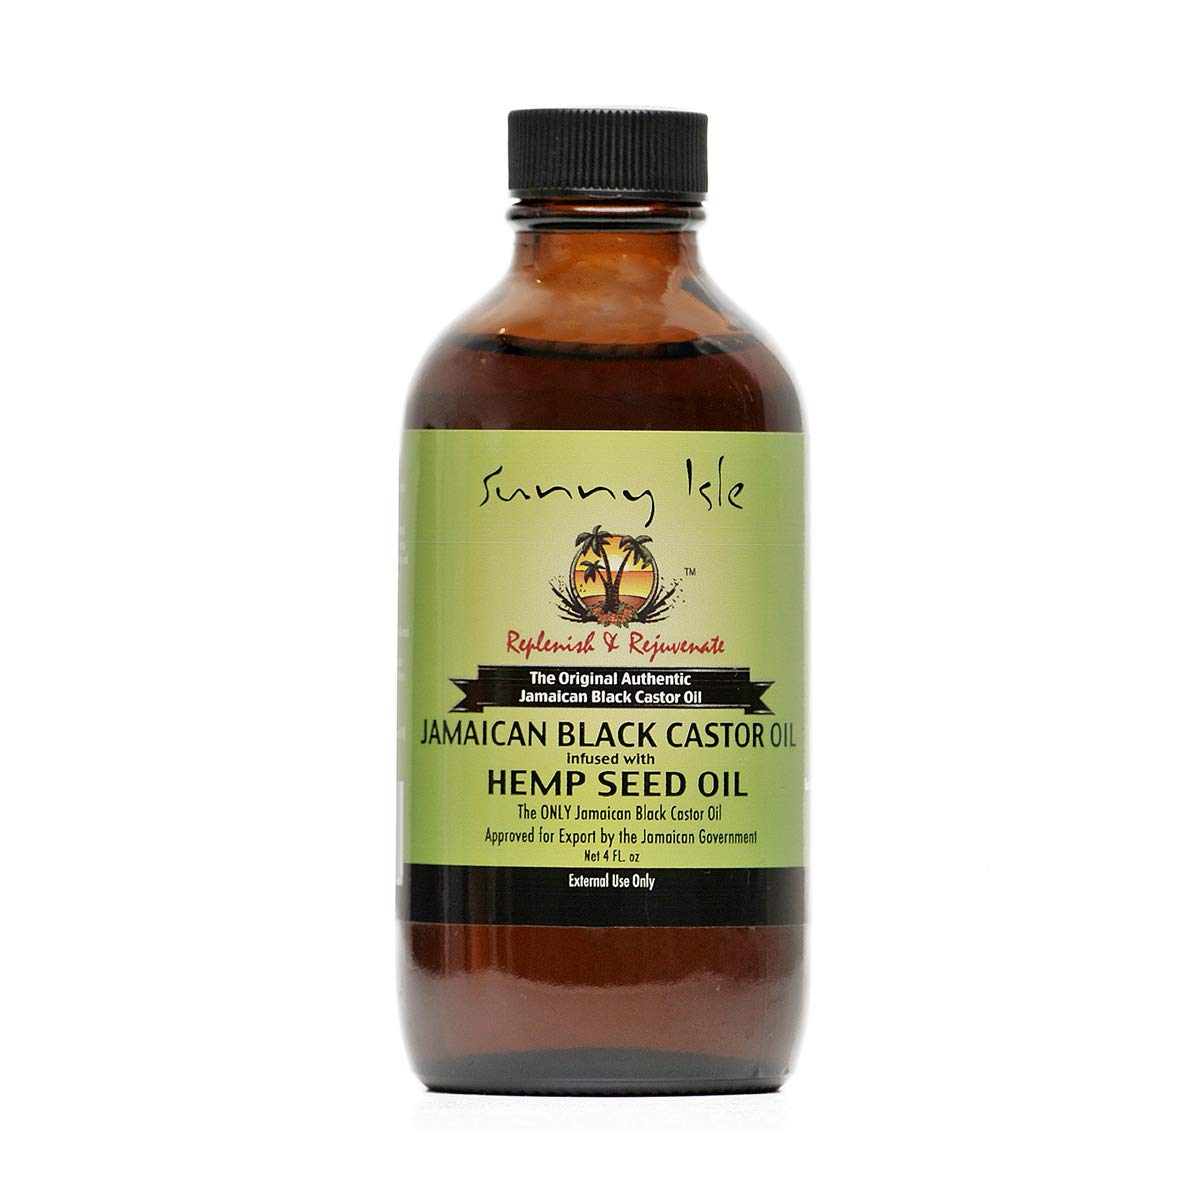 Sunny Isle Jamaican Black Castor Oil Infused with Hemp Seed Oil - Beauty Bar & Supply